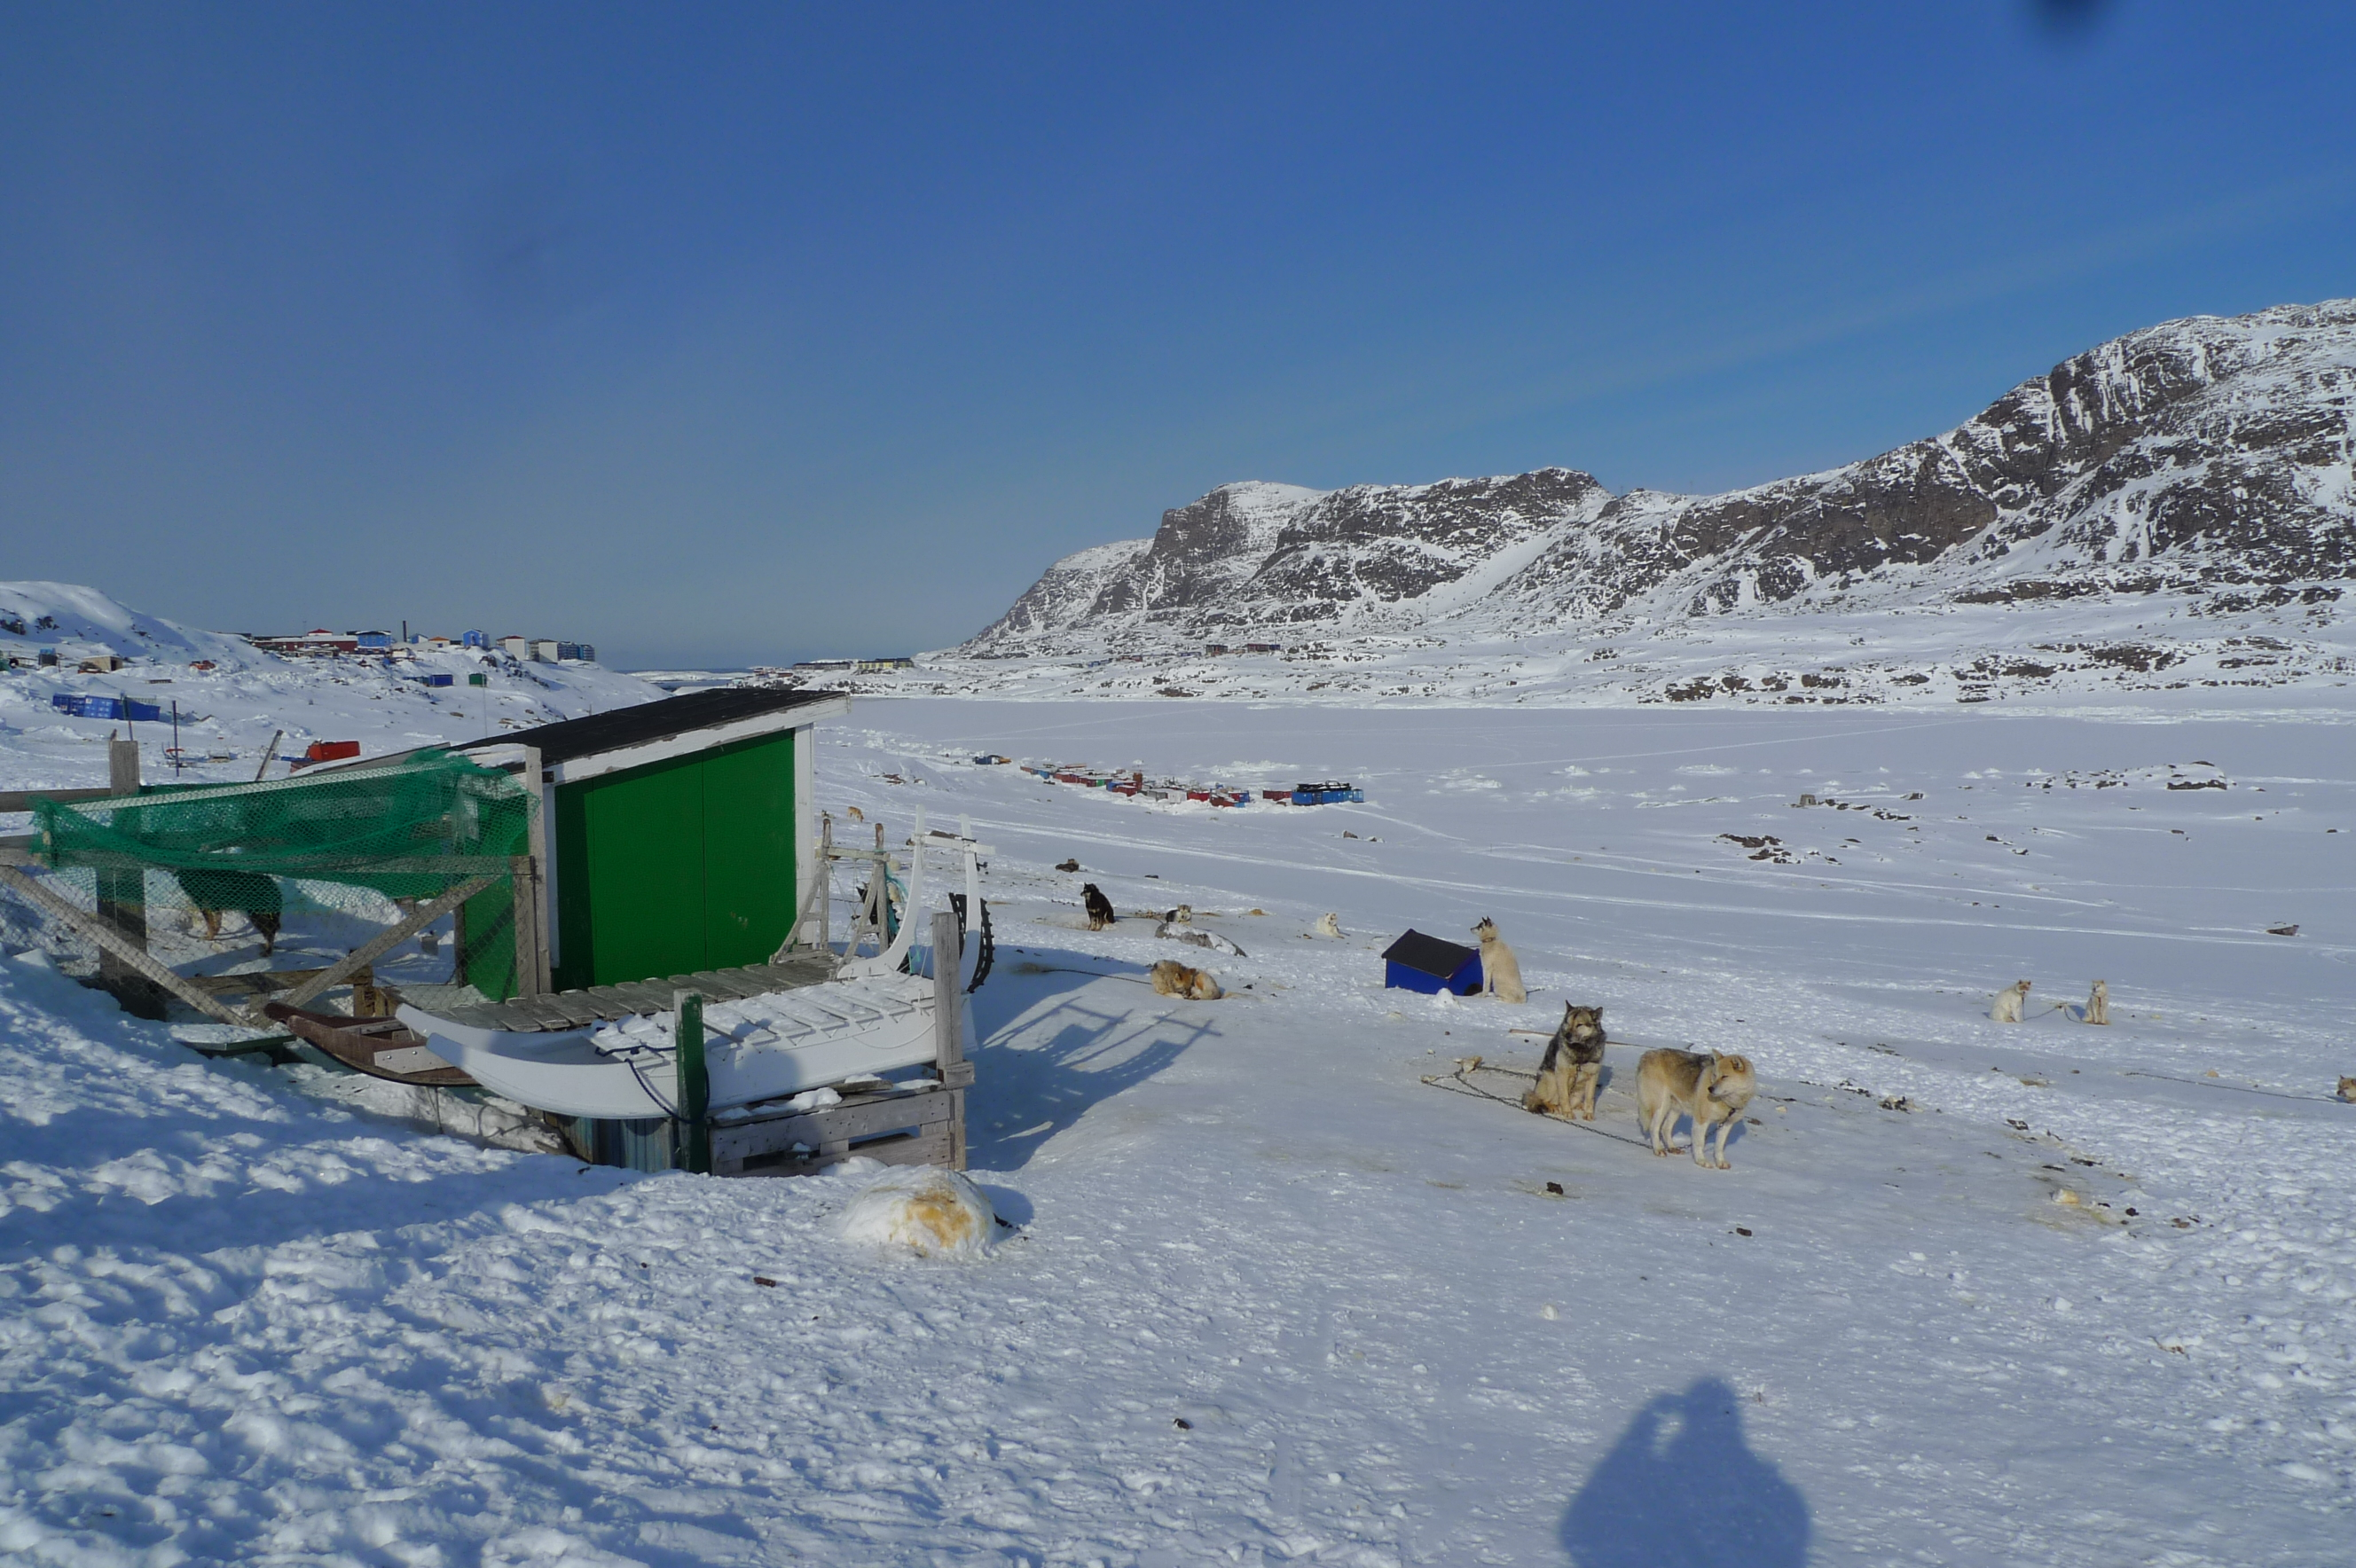 Sled dogs in Sisimiut. Greenland authorities have mandated vaccines and established registration in efforts to protect the dogs from virus outbreaks. (Kevin McGwin)